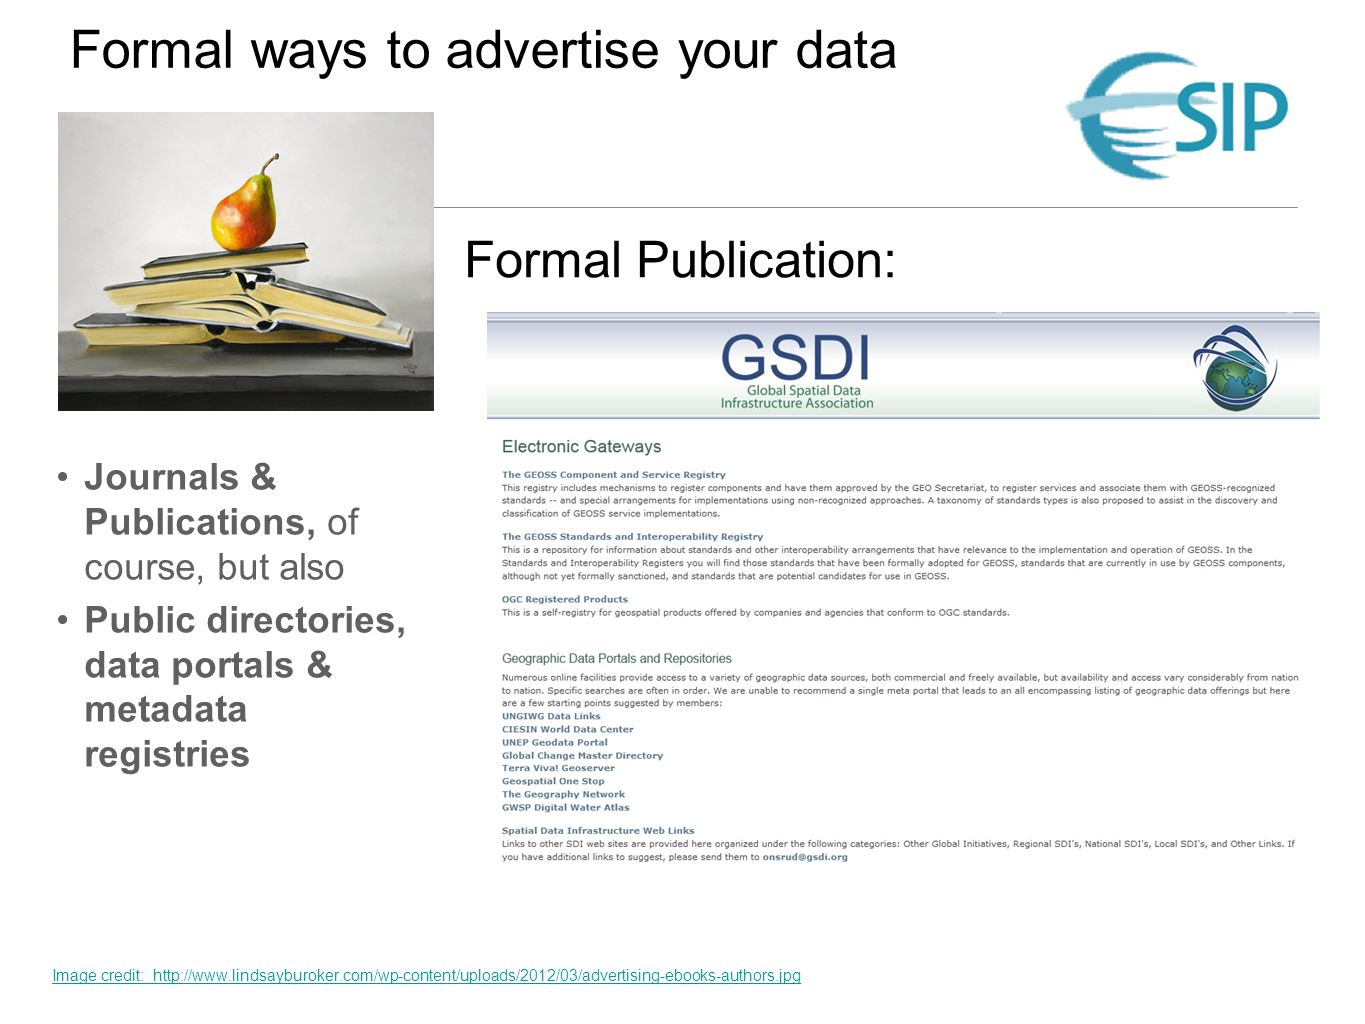 Module Template: Subtitle; Version 1.0, Reviewed 9/15/11 Local Data Management: Advertising Your Data, Version 1.0, Reviewed August 2012 Formal Publication: Journals & Publications, of course, but also Public directories, data portals & metadata registries Formal ways to advertise your data Image credit: http://www.lindsayburoker.com/wp-content/uploads/2012/03/advertising-ebooks-authors.jpg